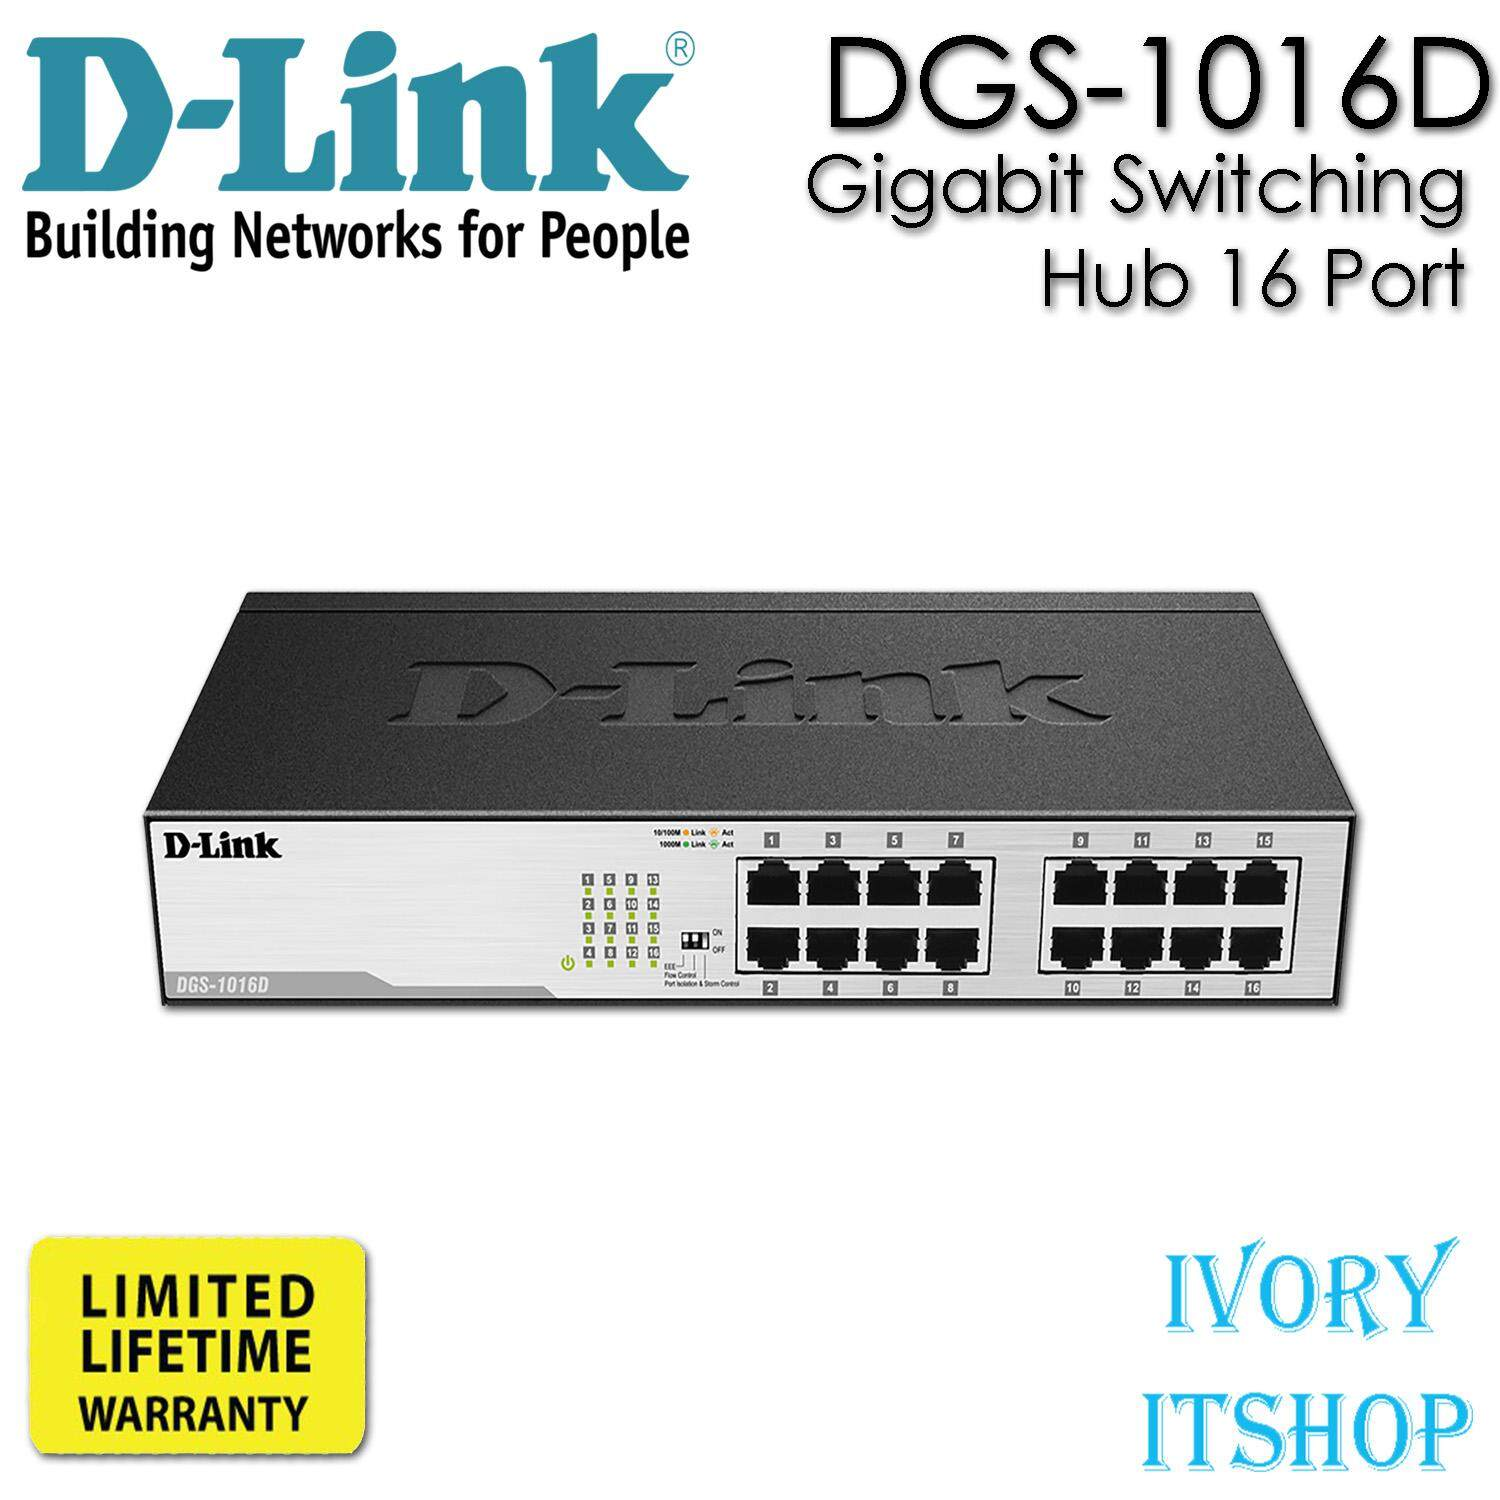 D-LINK Gigabit Switching Hub 16 Port รุ่น DGS-1016D